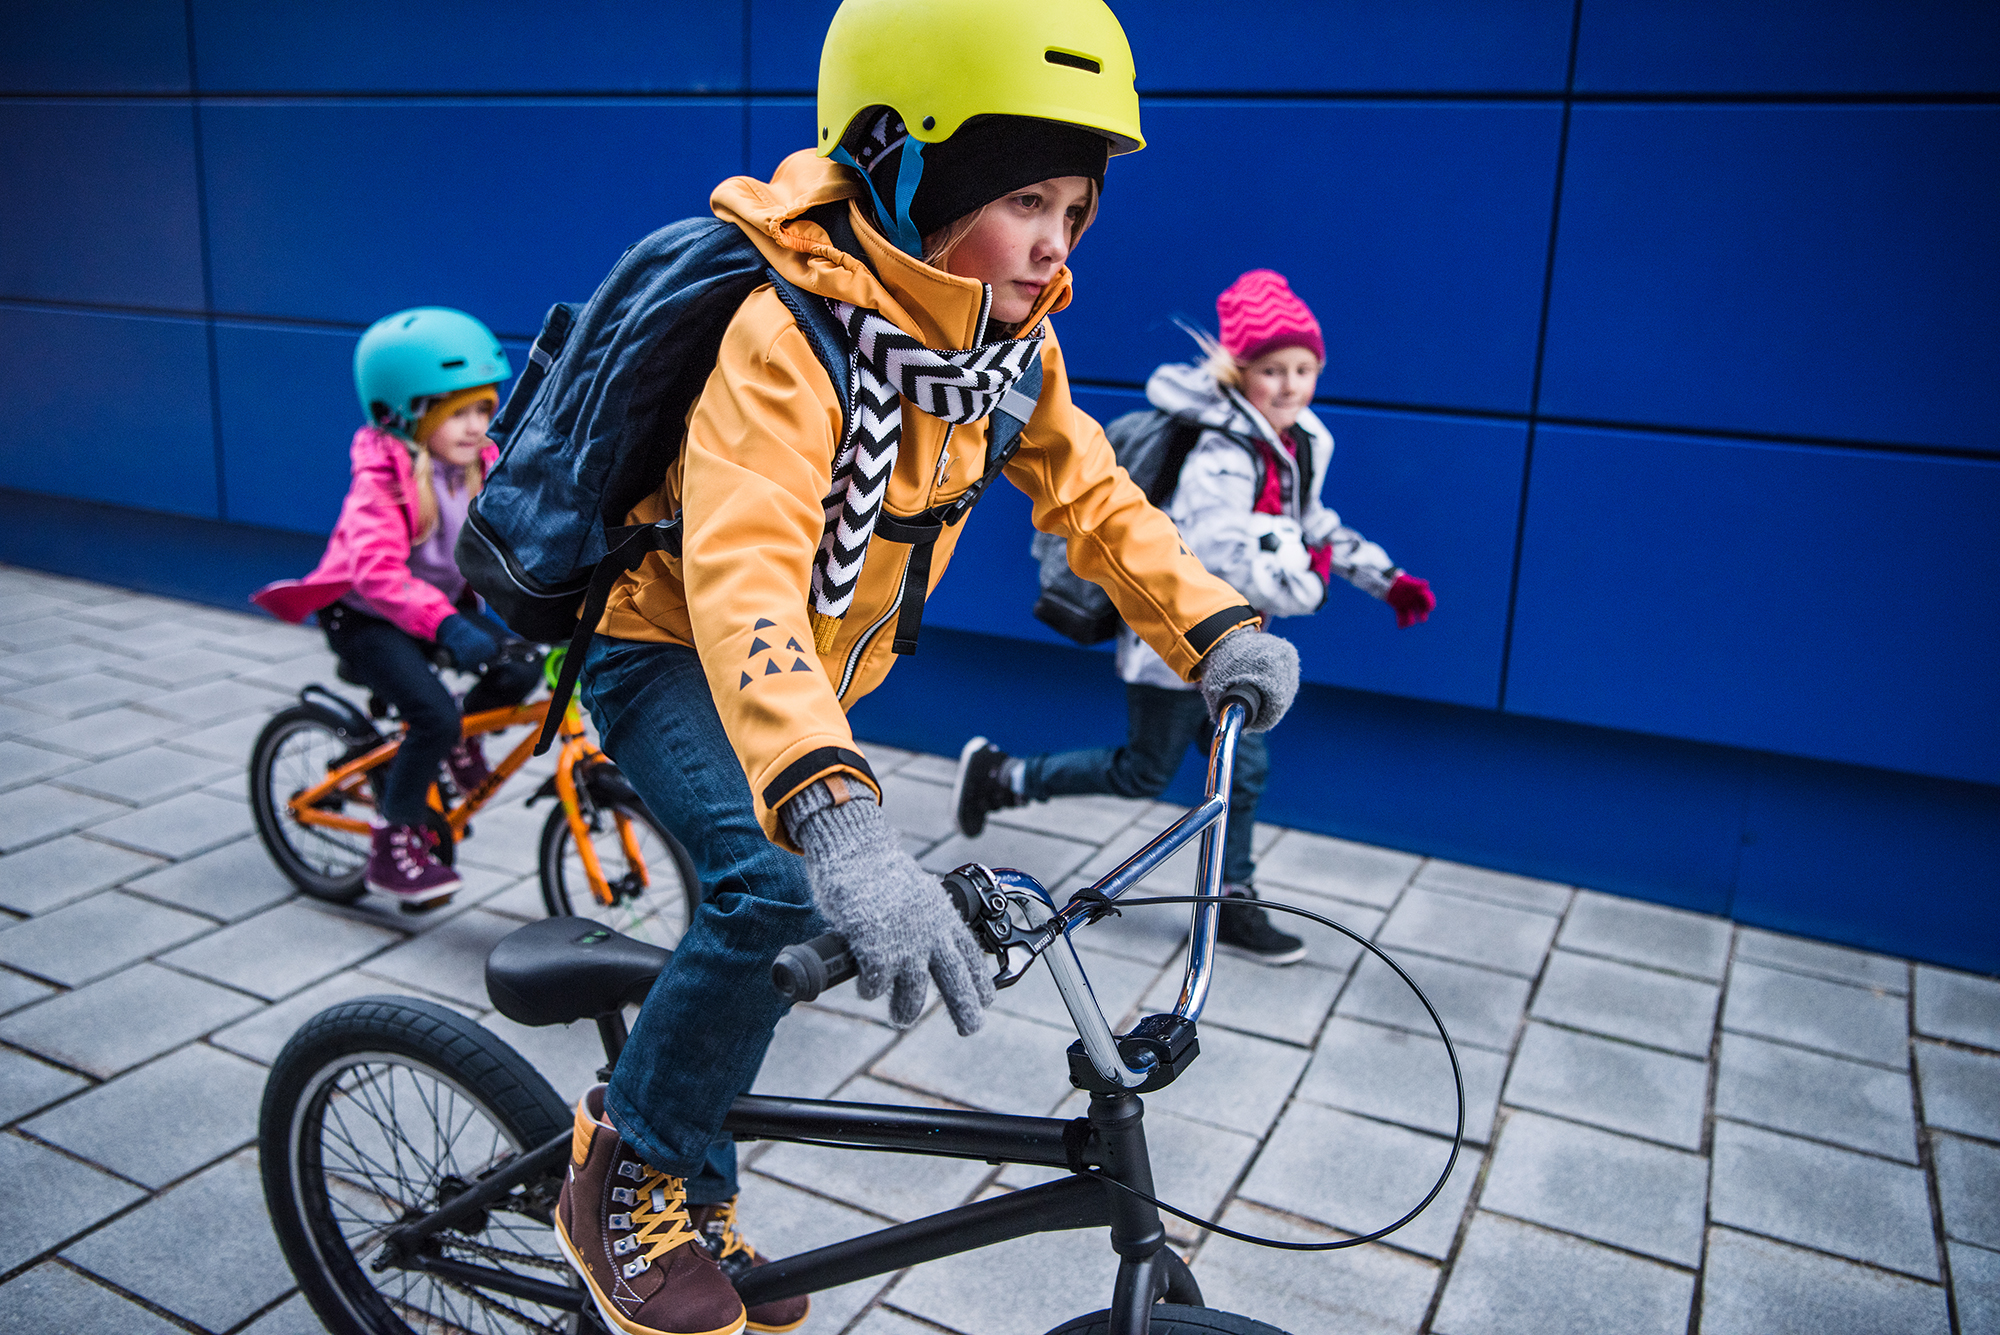 Reima softshell jackets are active kids' favourites